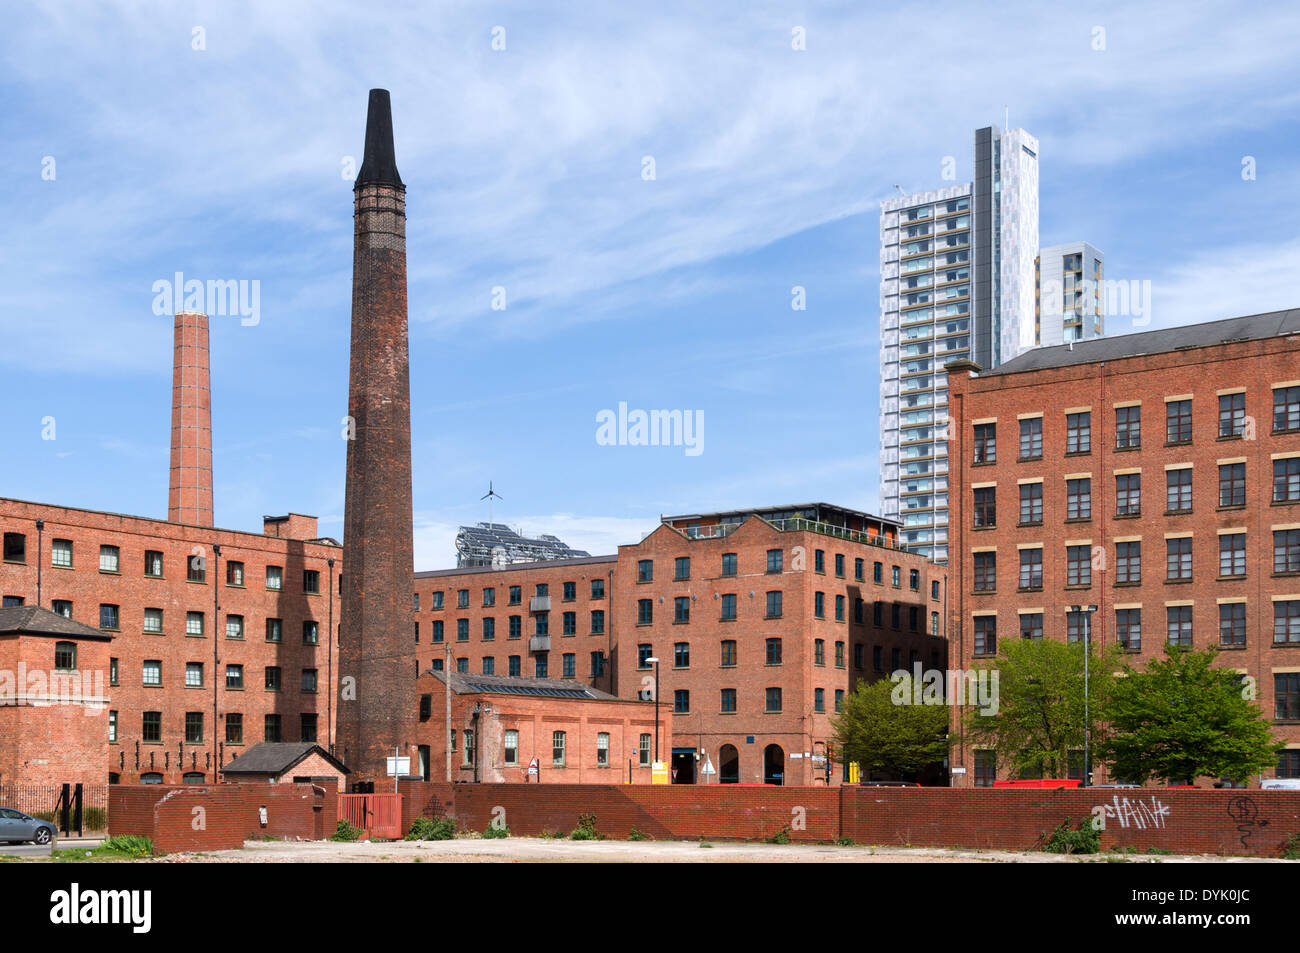 The former Macintosh Mill (now apartments) and Student Castle buildings, Manchester, England, UK - Stock Image